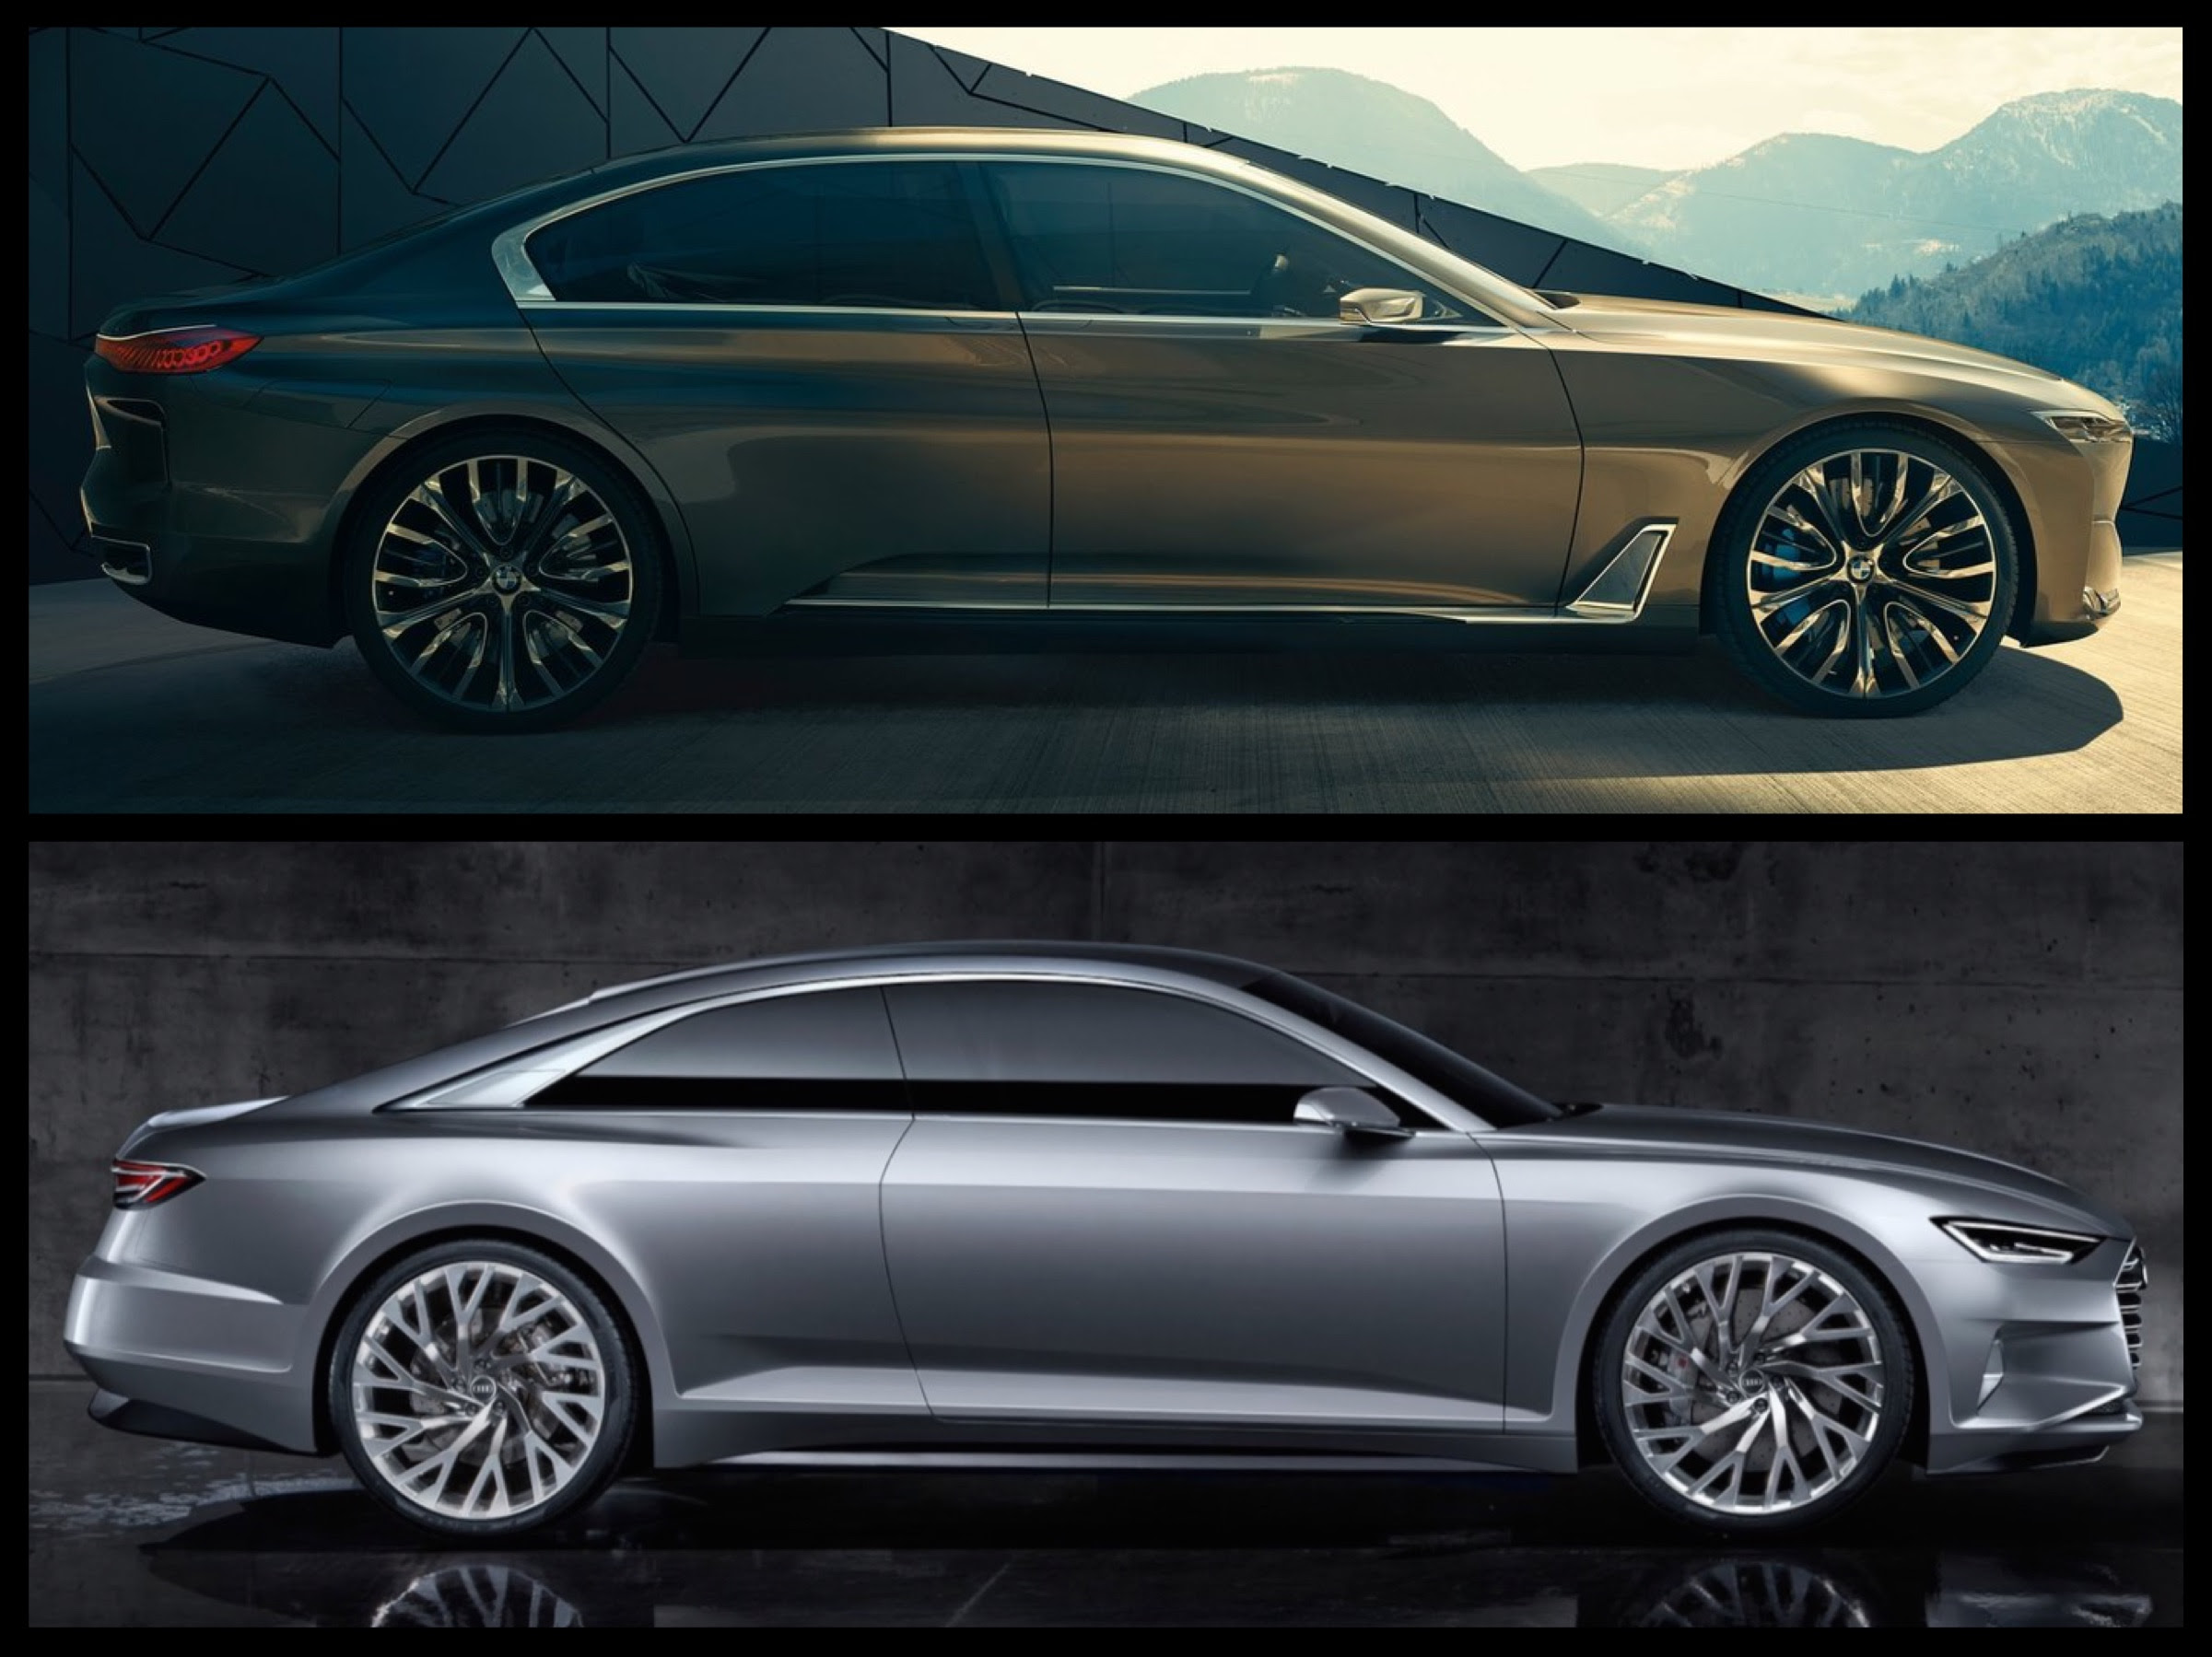 Bild-Vergleich-BMW-Vision-Future-Luxury-Audi-Prologue-Concept-03